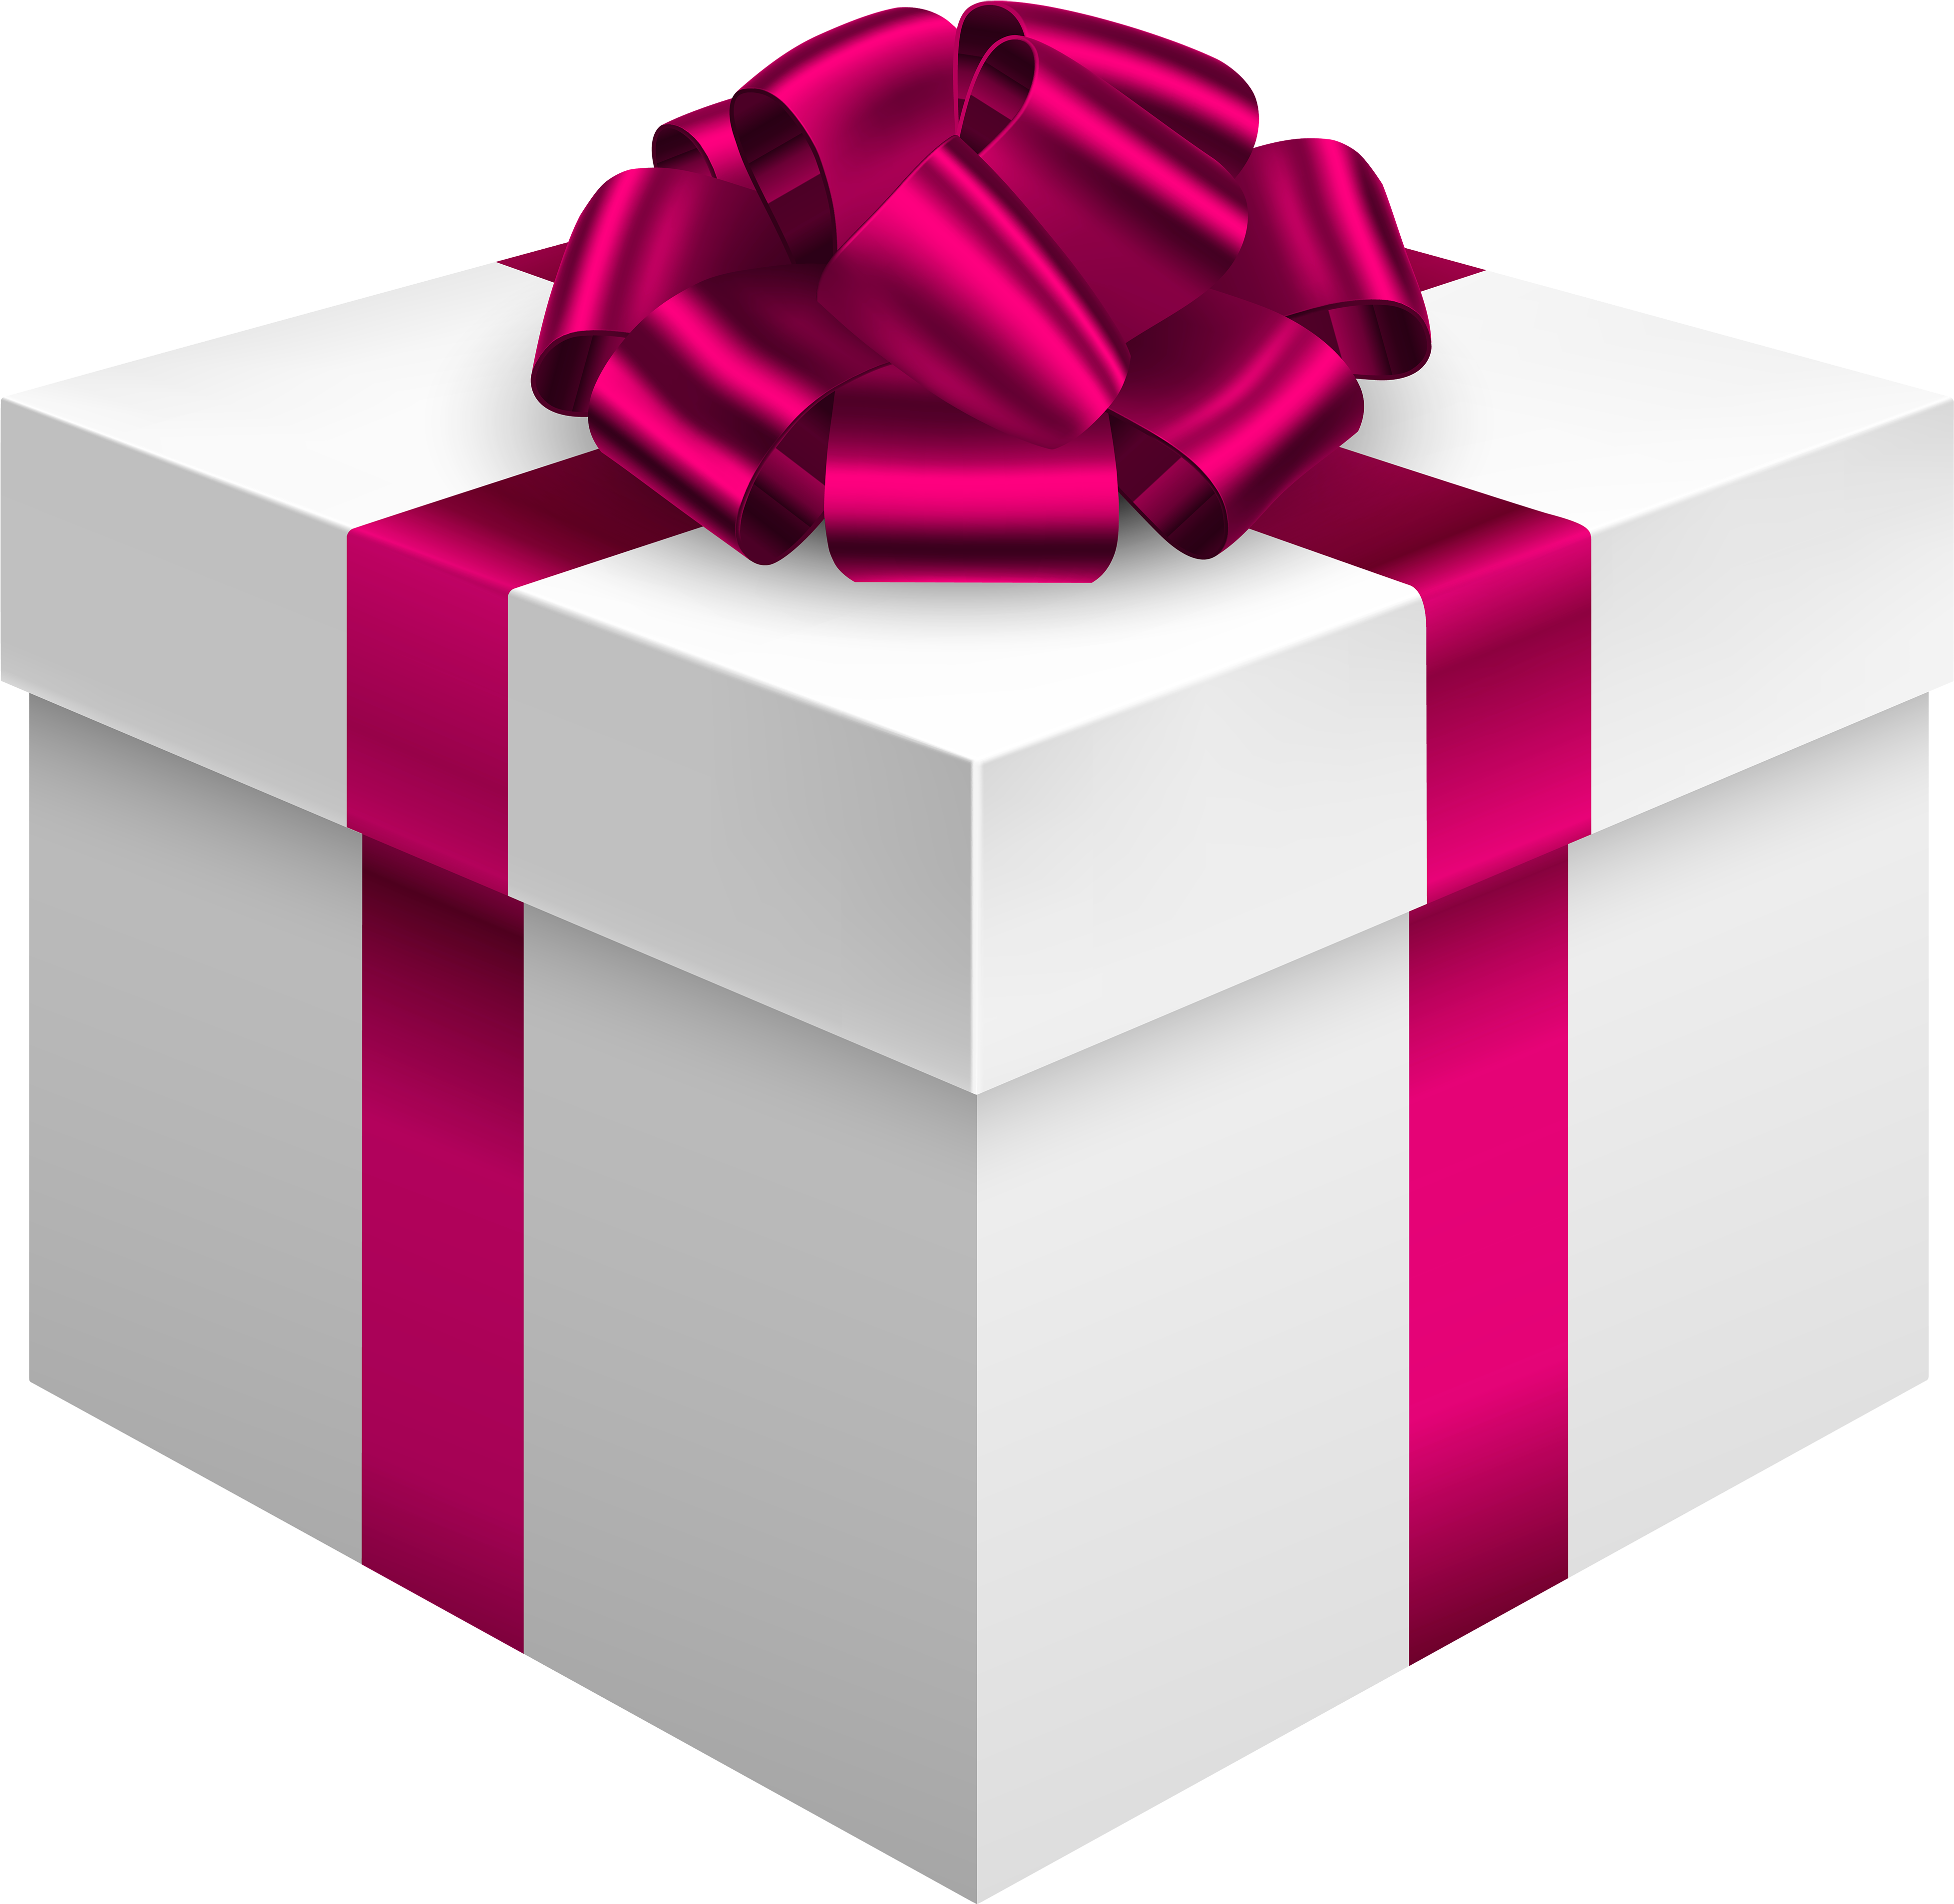 Free Gift Clipart Png, Download Free Clip Art, Free Clip Art on Clipart  Library